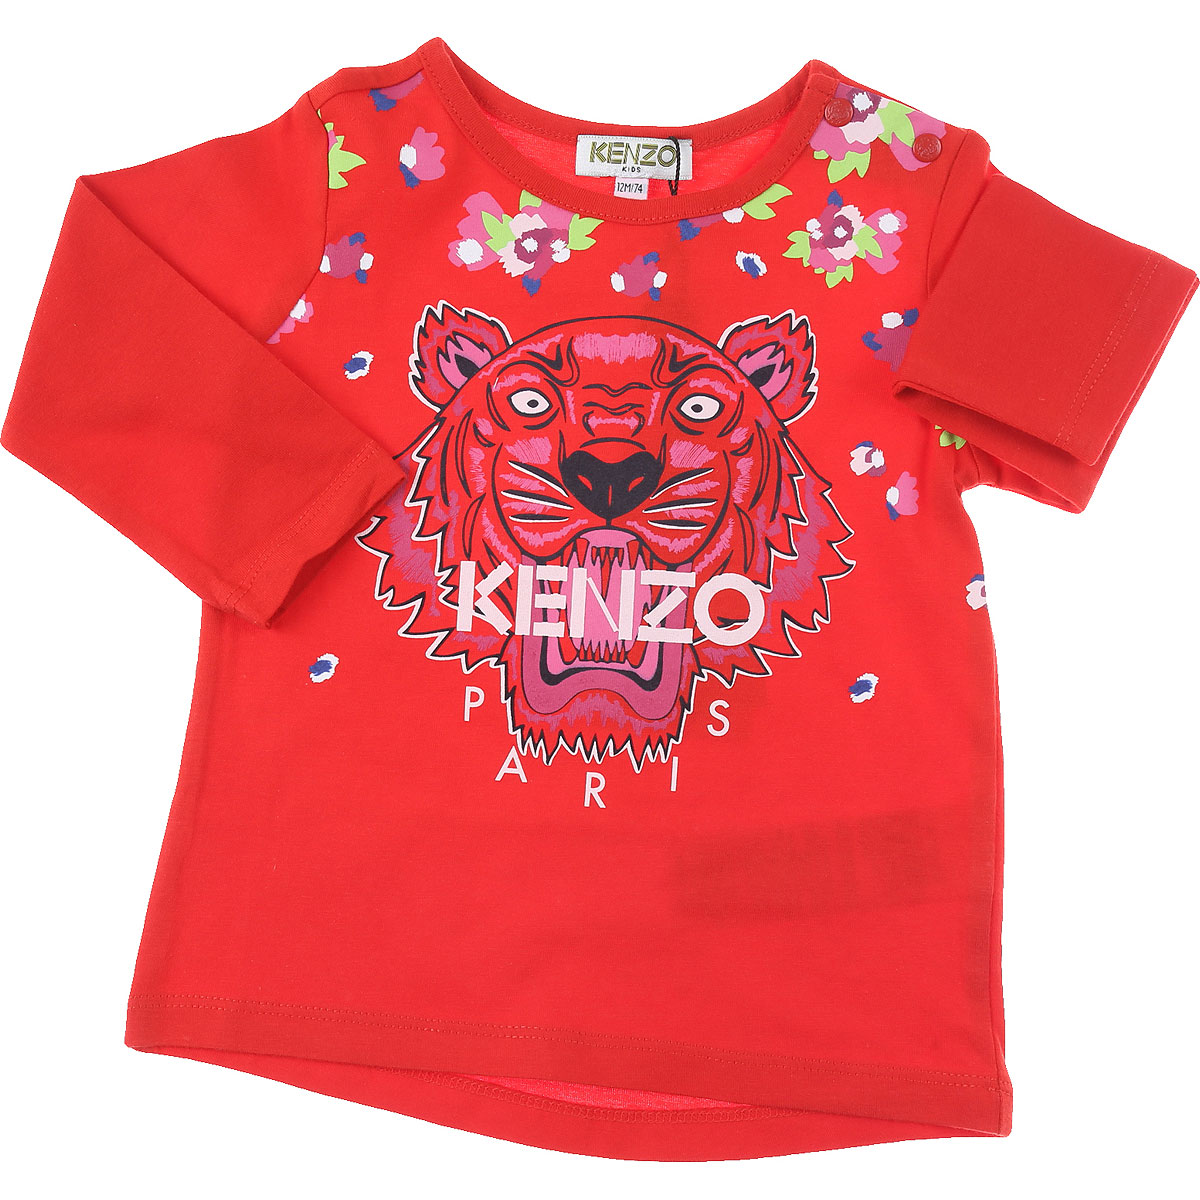 Kenzo Baby T-Shirt for Girls On Sale, Red, Cotton, 2019, 12M 18M